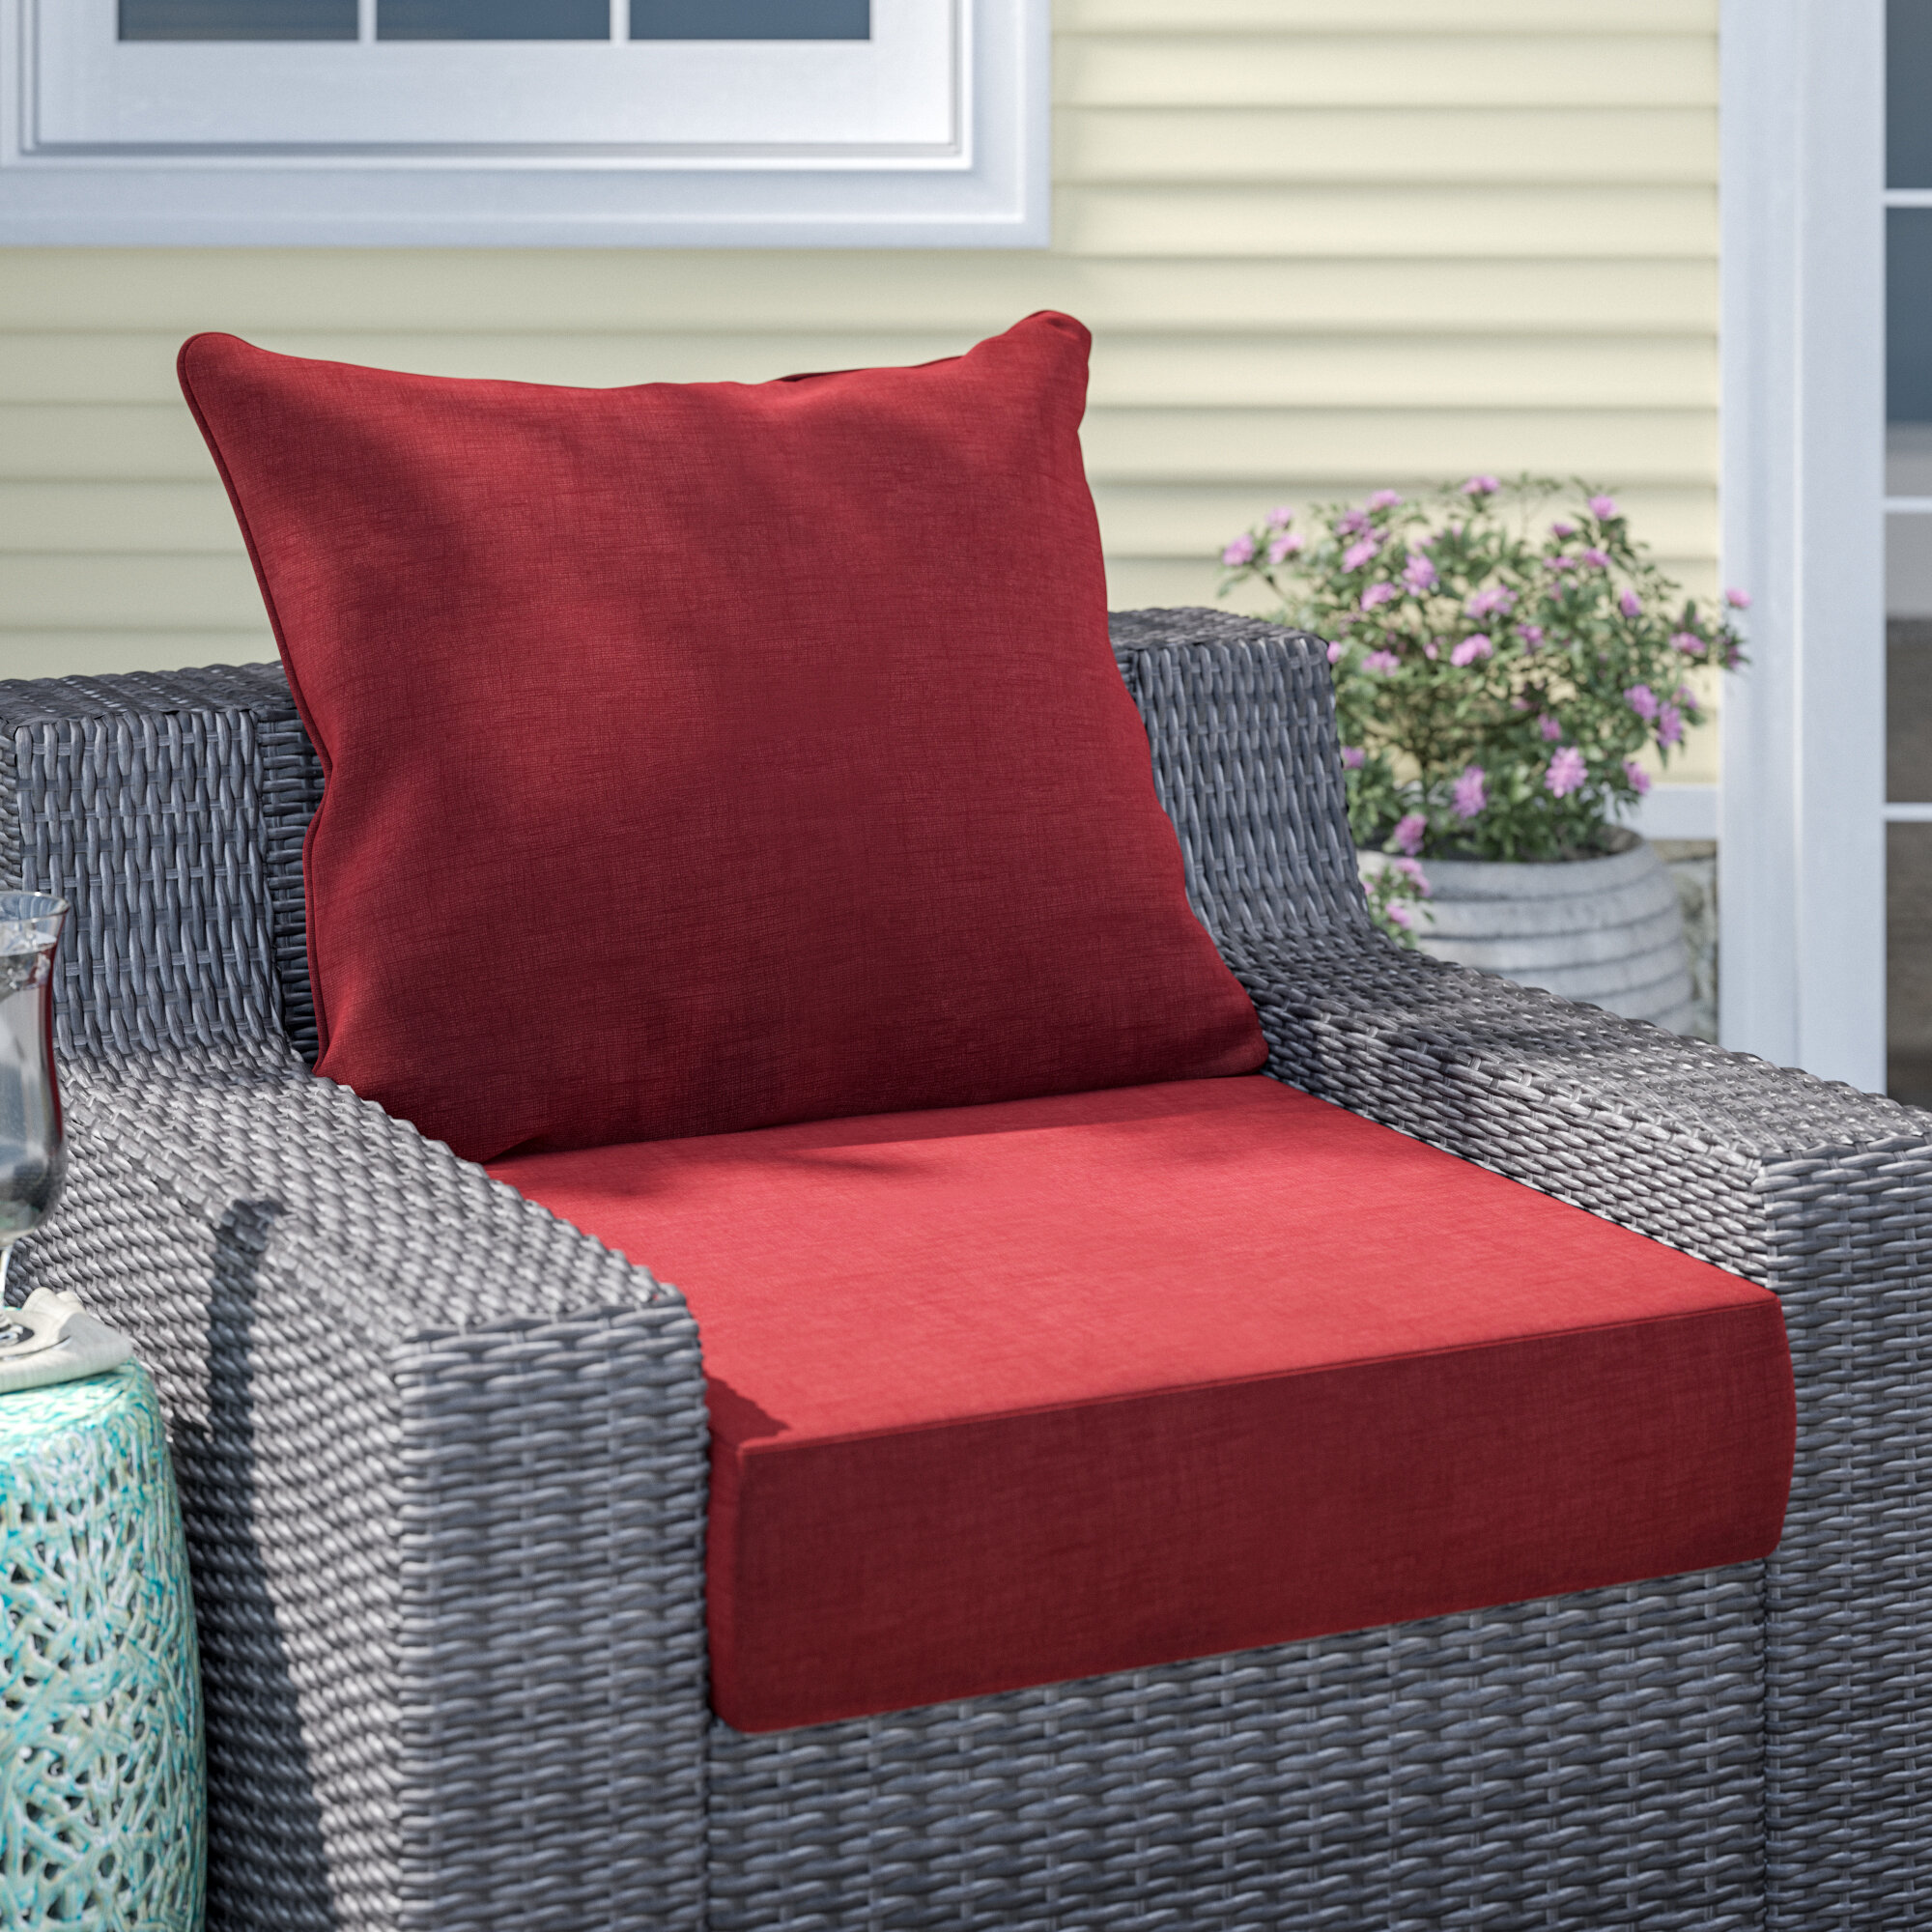 Bench Cushion Thick Padded,2//3 Seater Cushion Lounger Cushion,Non-Slip Long Chair Pad Deck Chair Cushion for Dining Patio Swing Brown,80 * 30cm